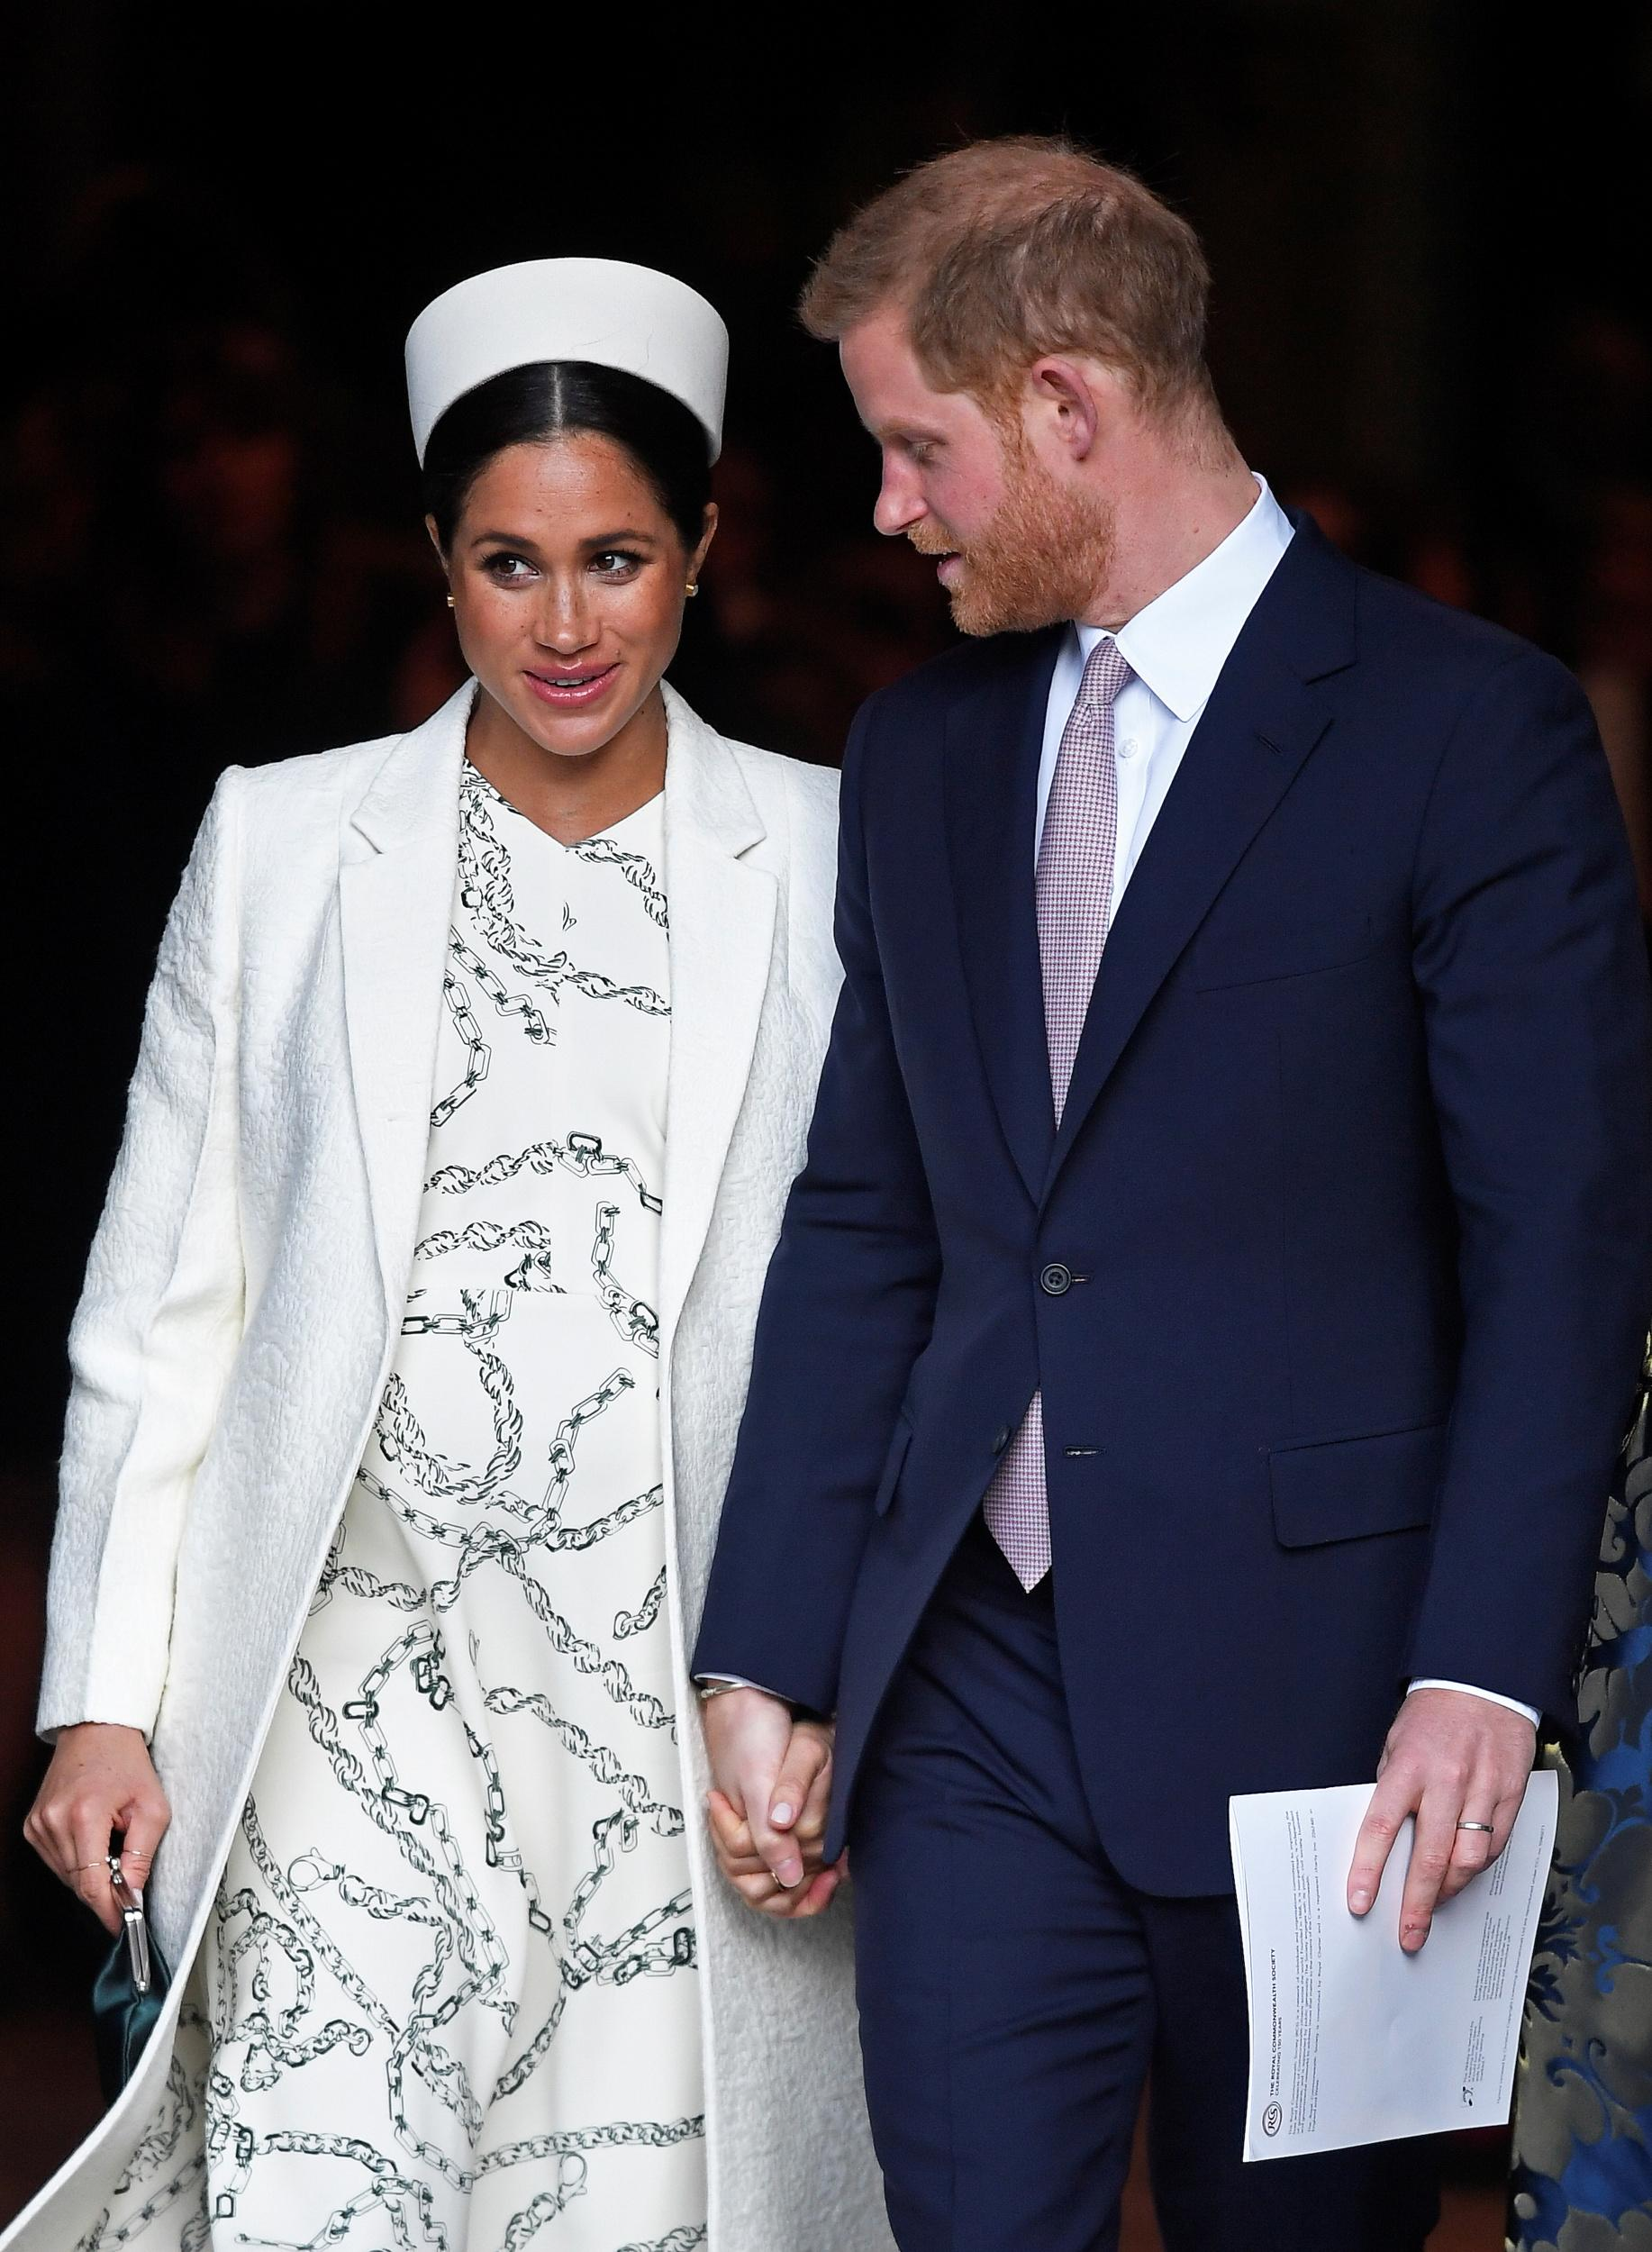 Britain's Prince Harry and Meghan, Duchess of Sussex leave after the Commonwealth Service at Westminster Abbey, on Commonwealth Day, in London, Britain March 11, 2019.  REUTERS/Toby Melville